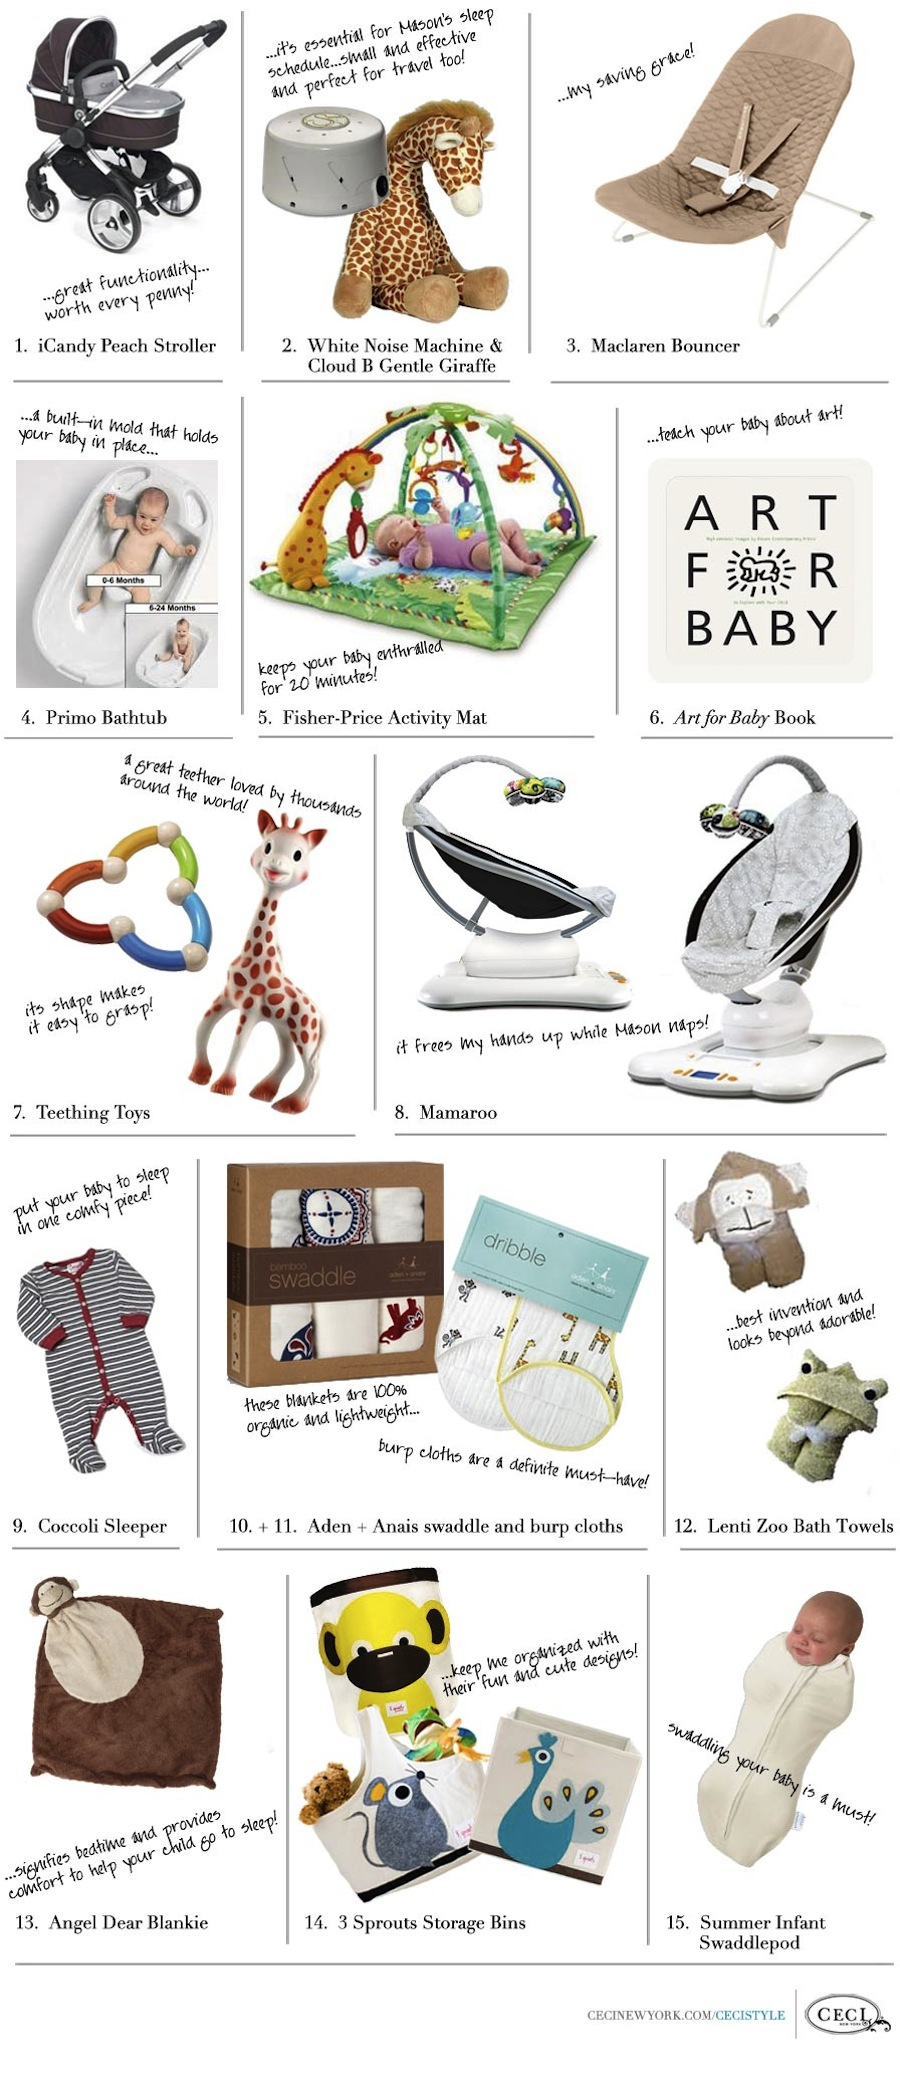 Baby Love: Ceci Johnson's Favorite Baby Products for Her 3-to-4-Month-Old